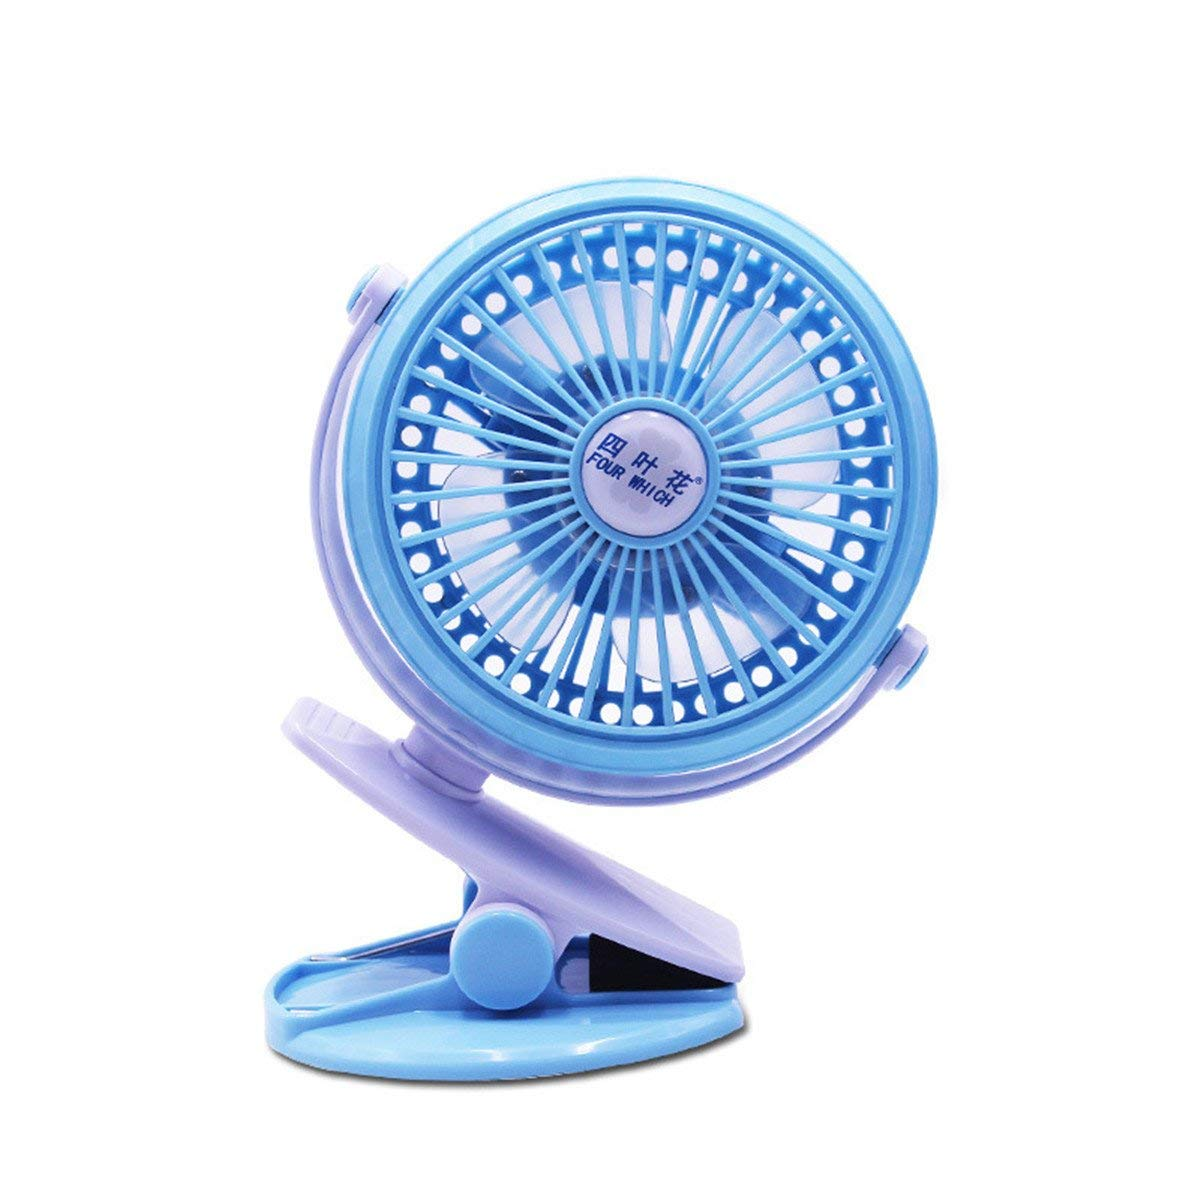 Quiet Desk Fan USB, 360 Adjustable Wind, Personal Clip or Desk Fan with 3 Speeds, Portable USB Powered Mini Personal Clip on Fan for Home, Office, Bedroom (blue)